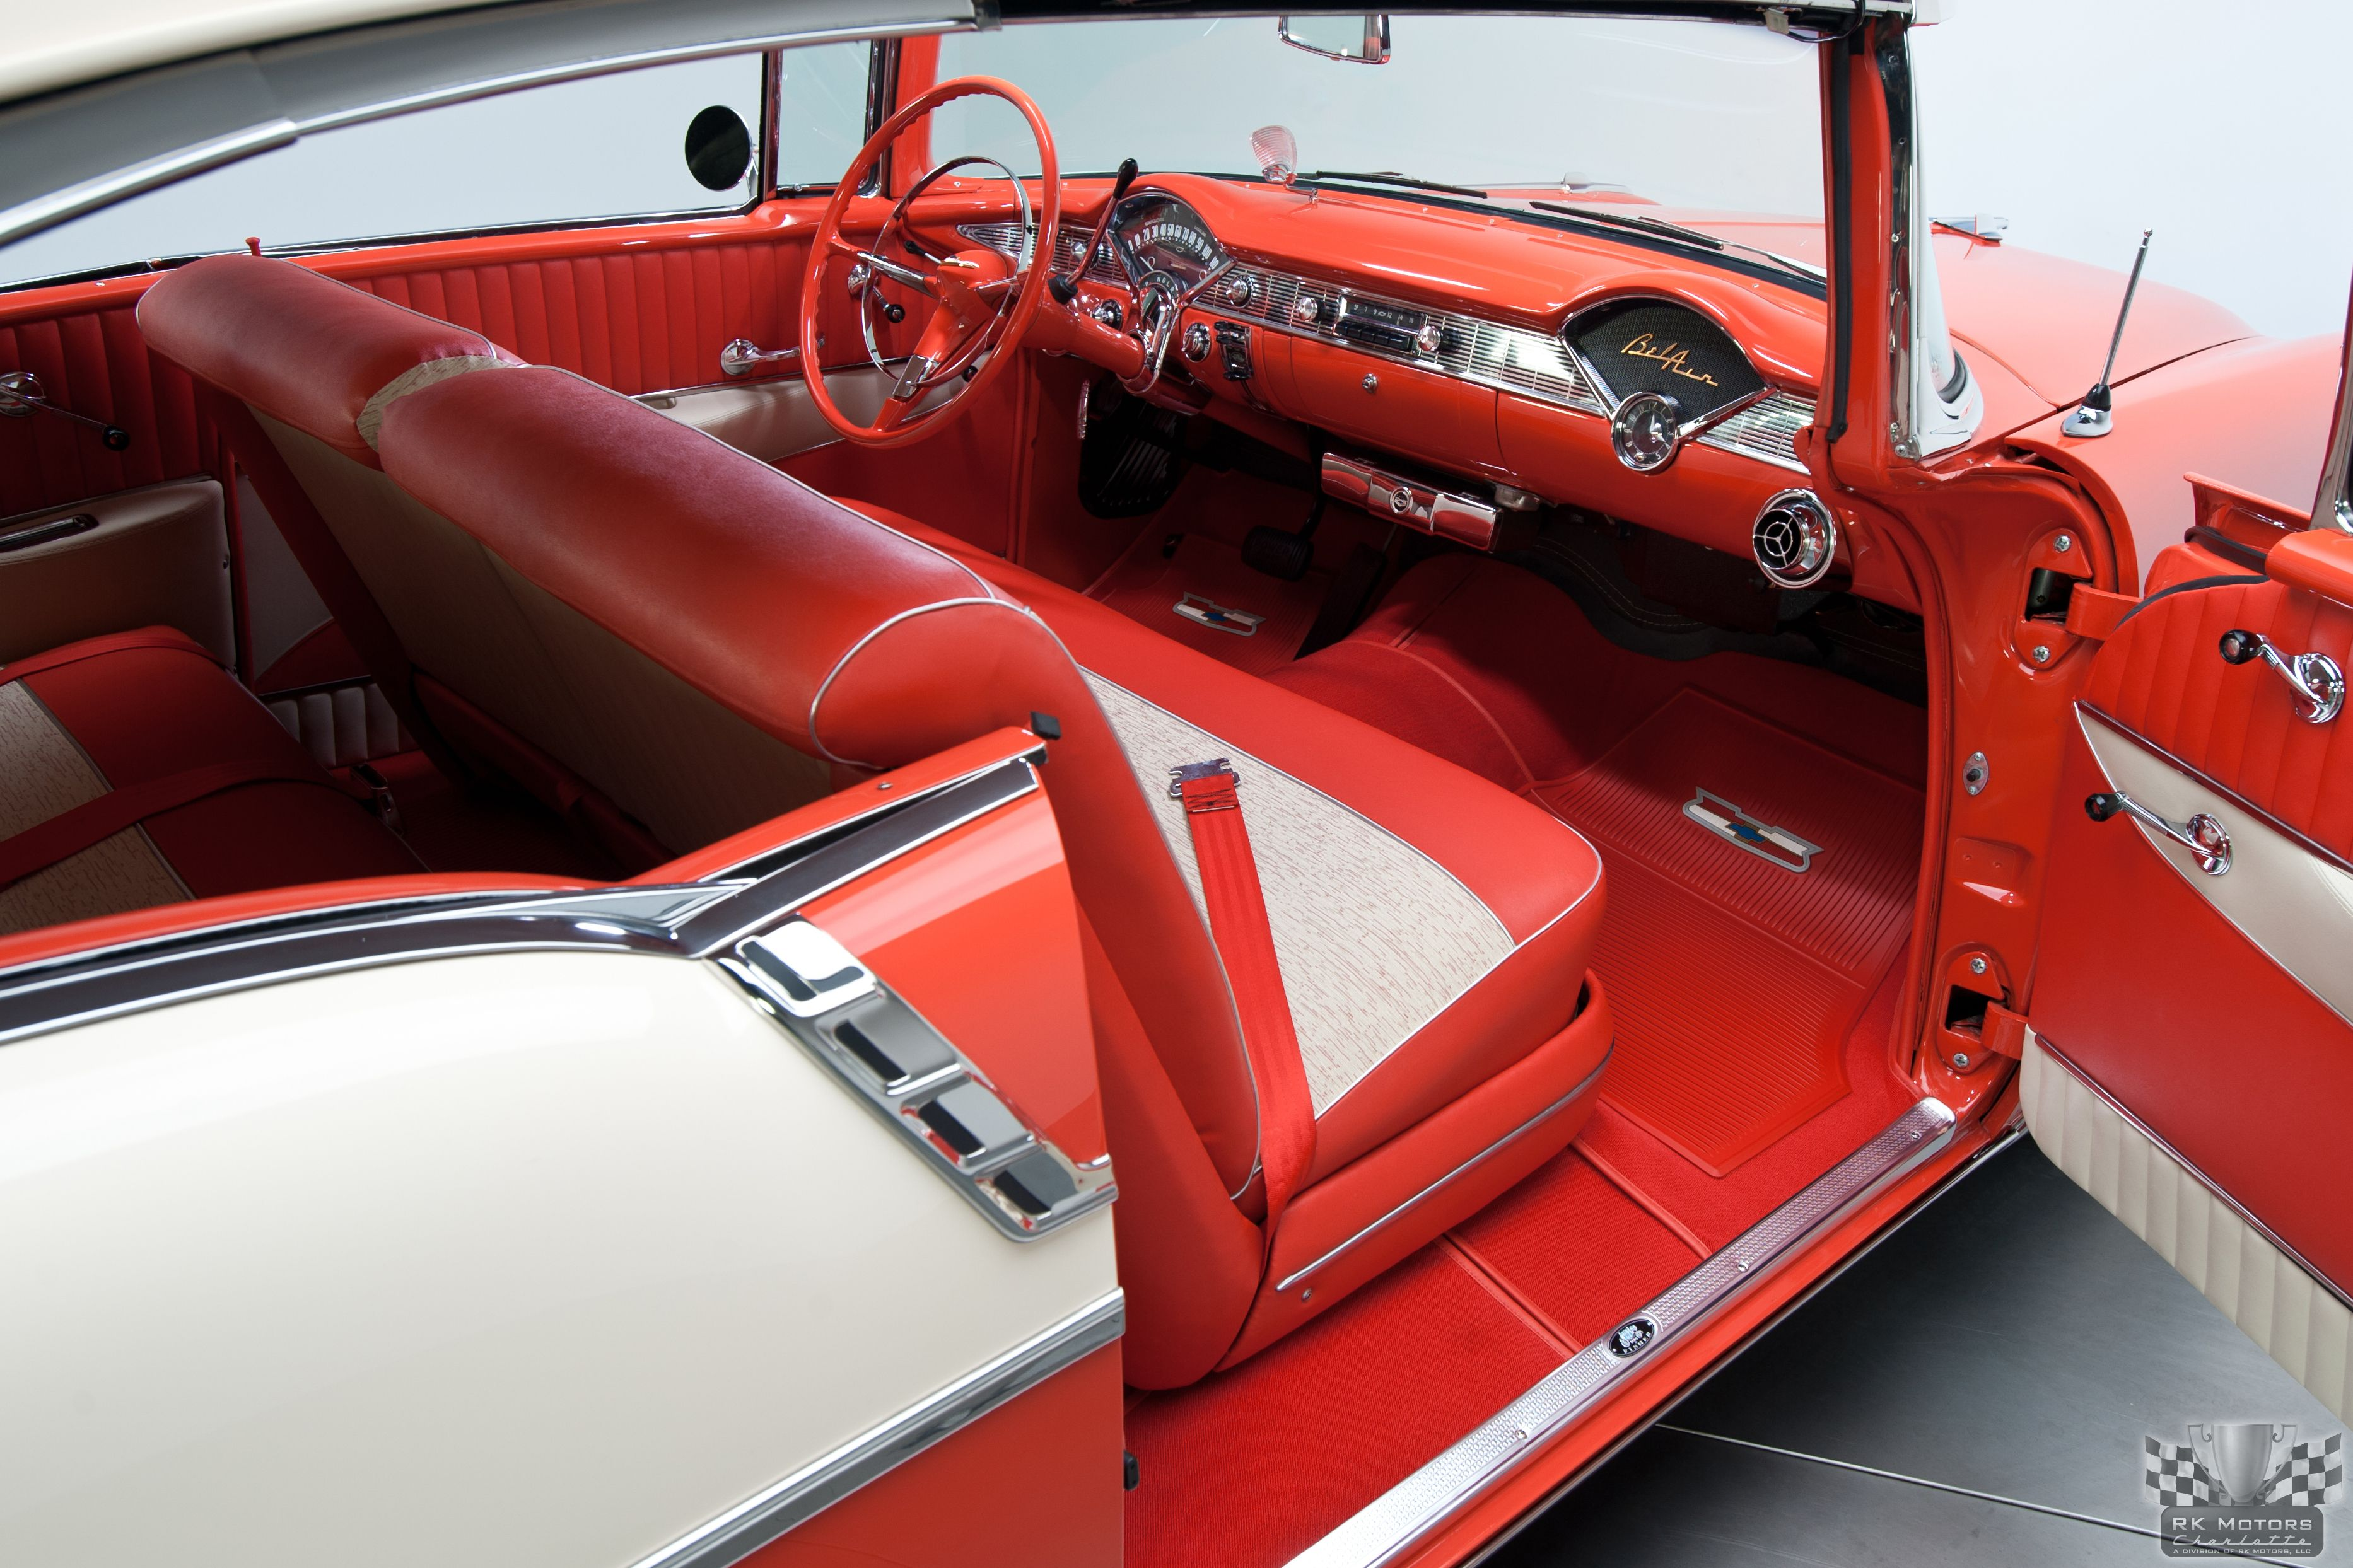 1956 bel air for sale submited images - 1956 Chevrolet Bel Air Interior